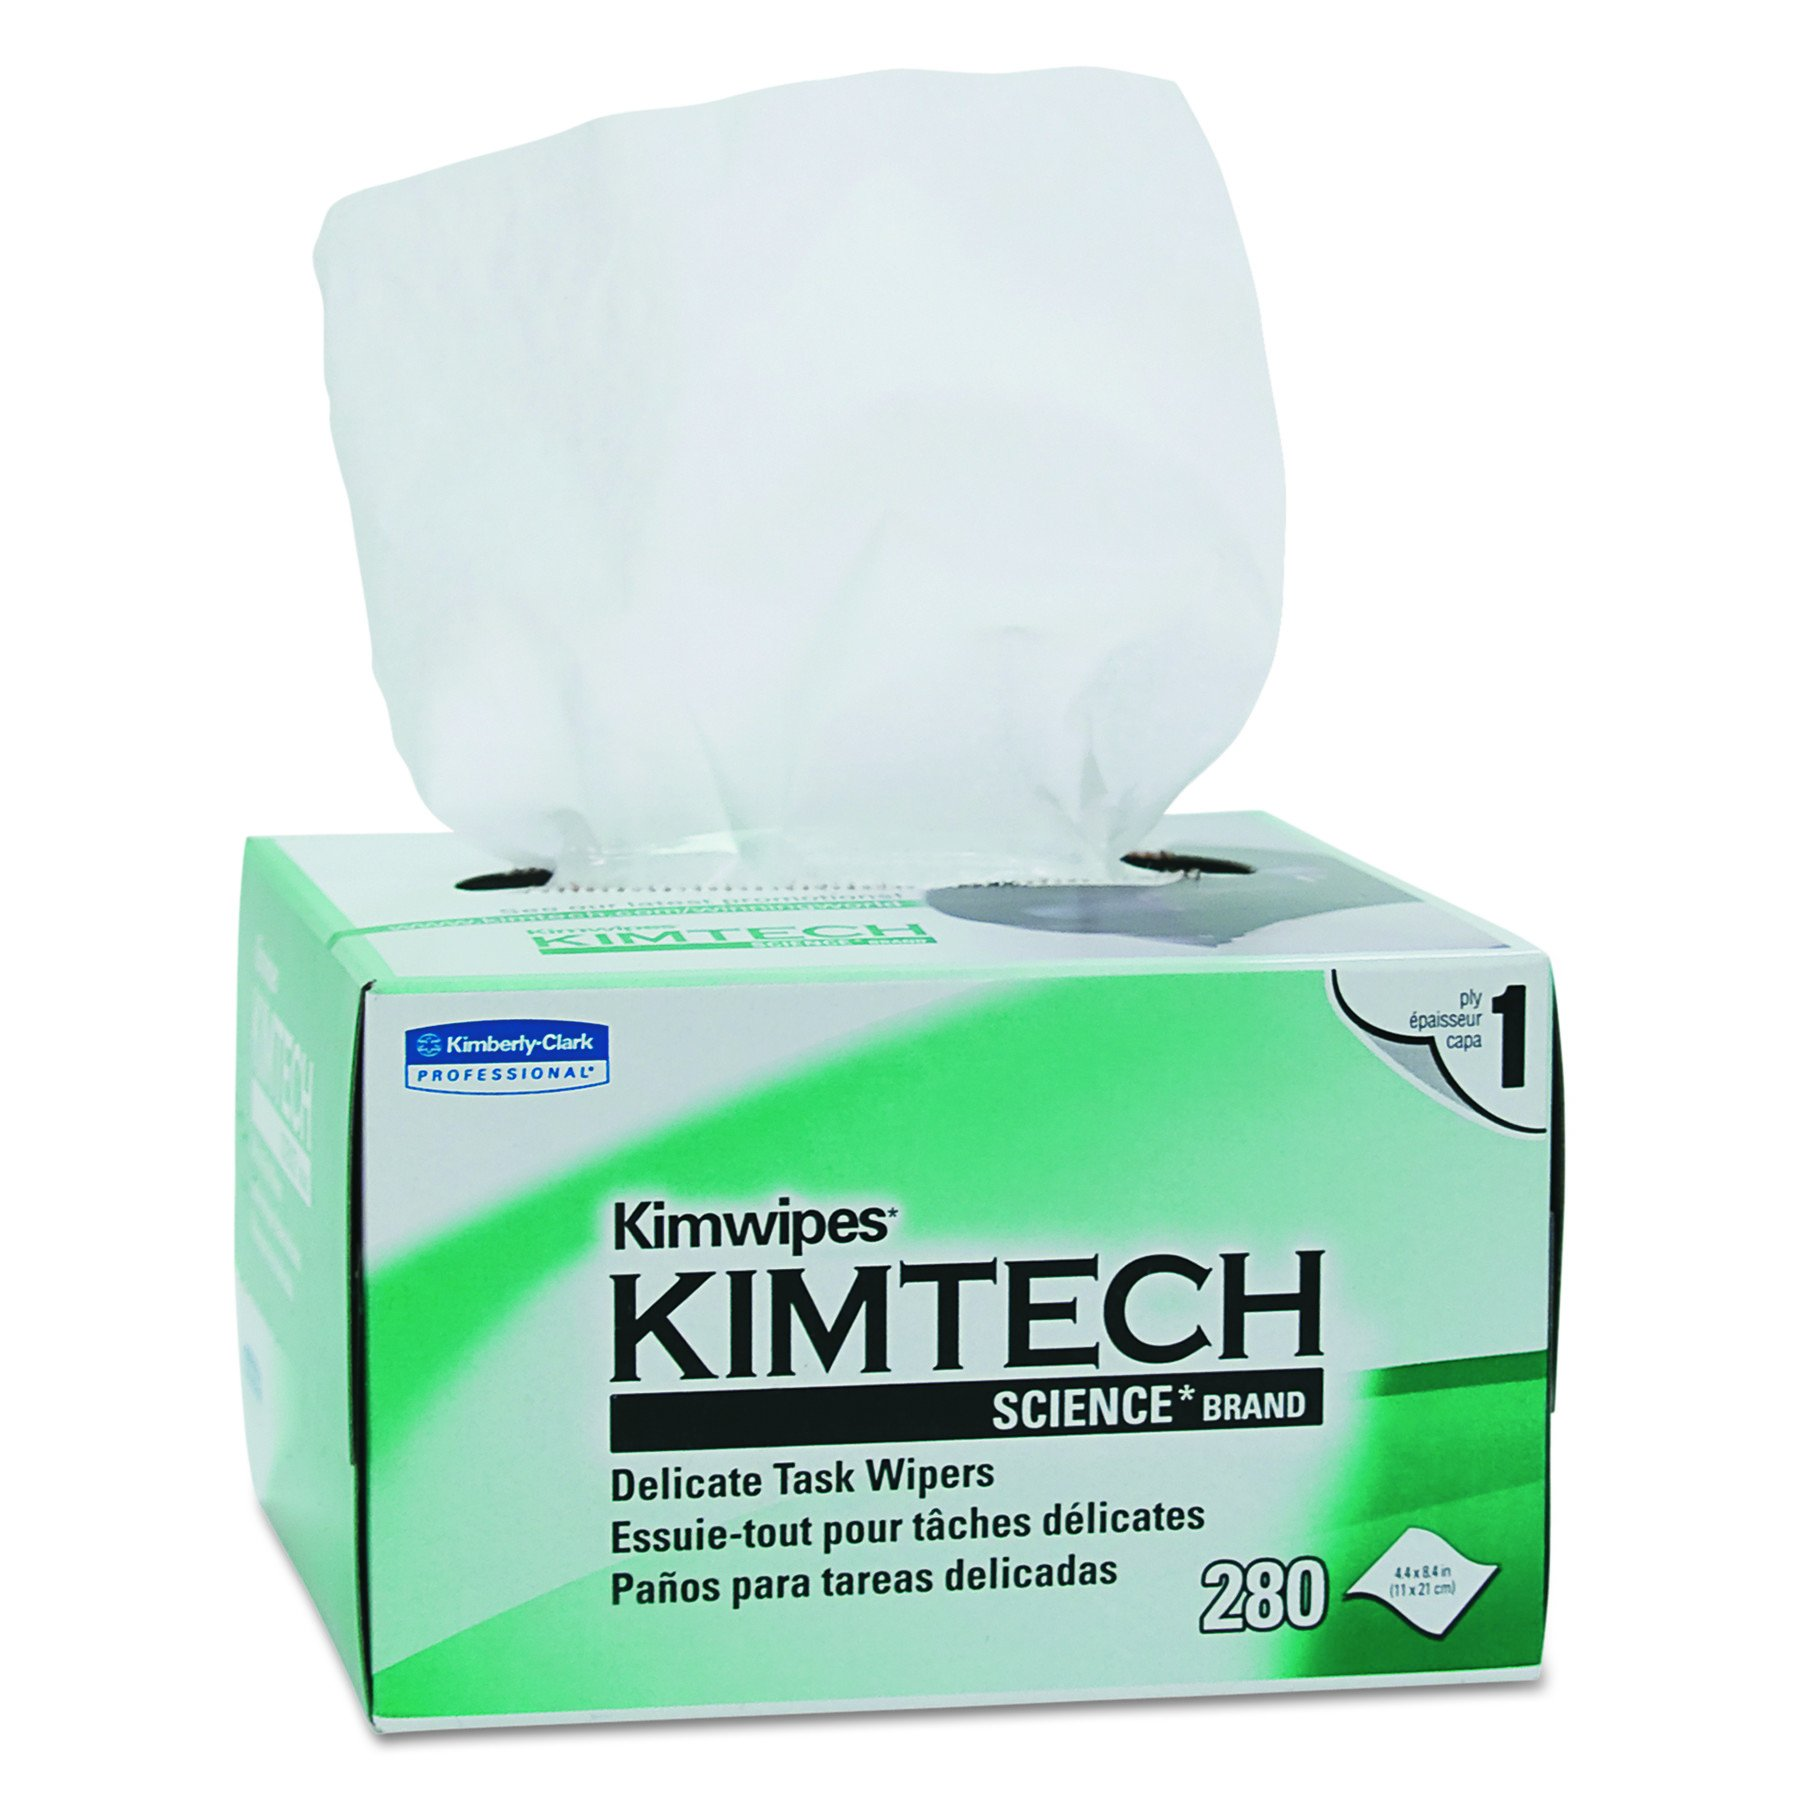 Kimtech 34155CT Kimwipes, Delicate Task Wipers, 1-Ply, 4 2/5 x 8 2/5, 280 per Box (Case of 60 Boxes)